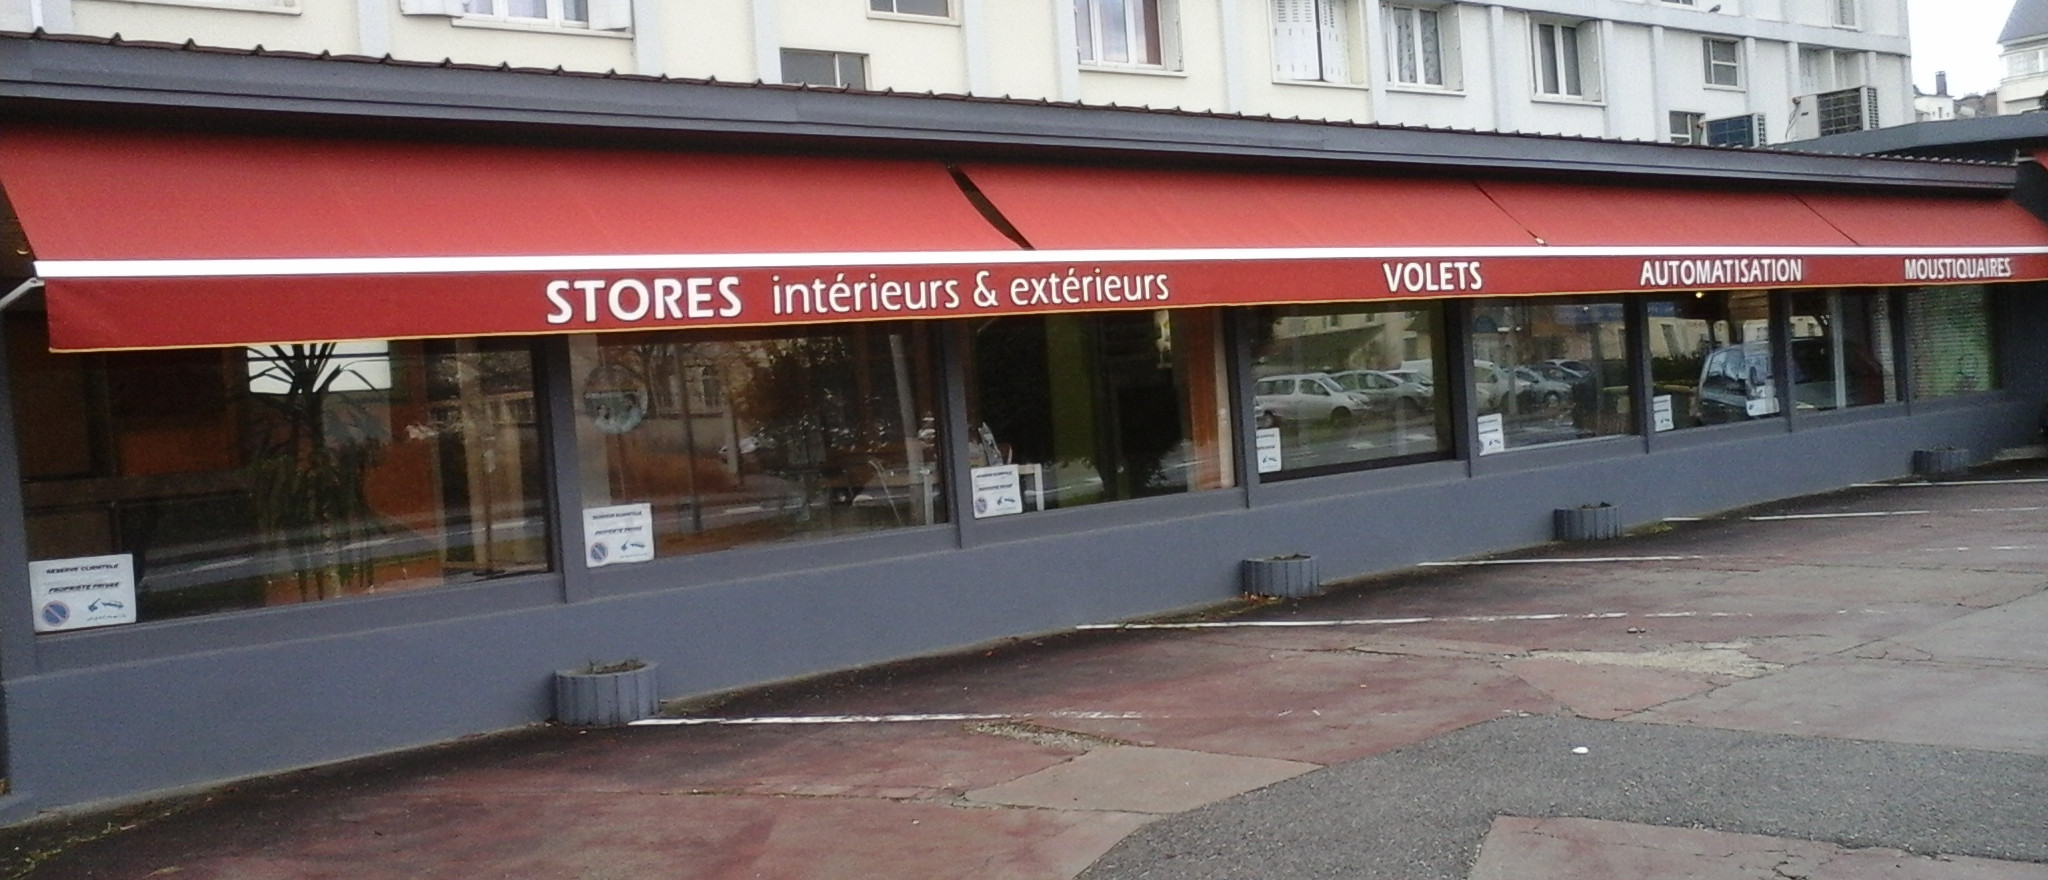 Magasin Bricolage Chambery Storissimo Chambéry Sur Volets Roulants Chambery